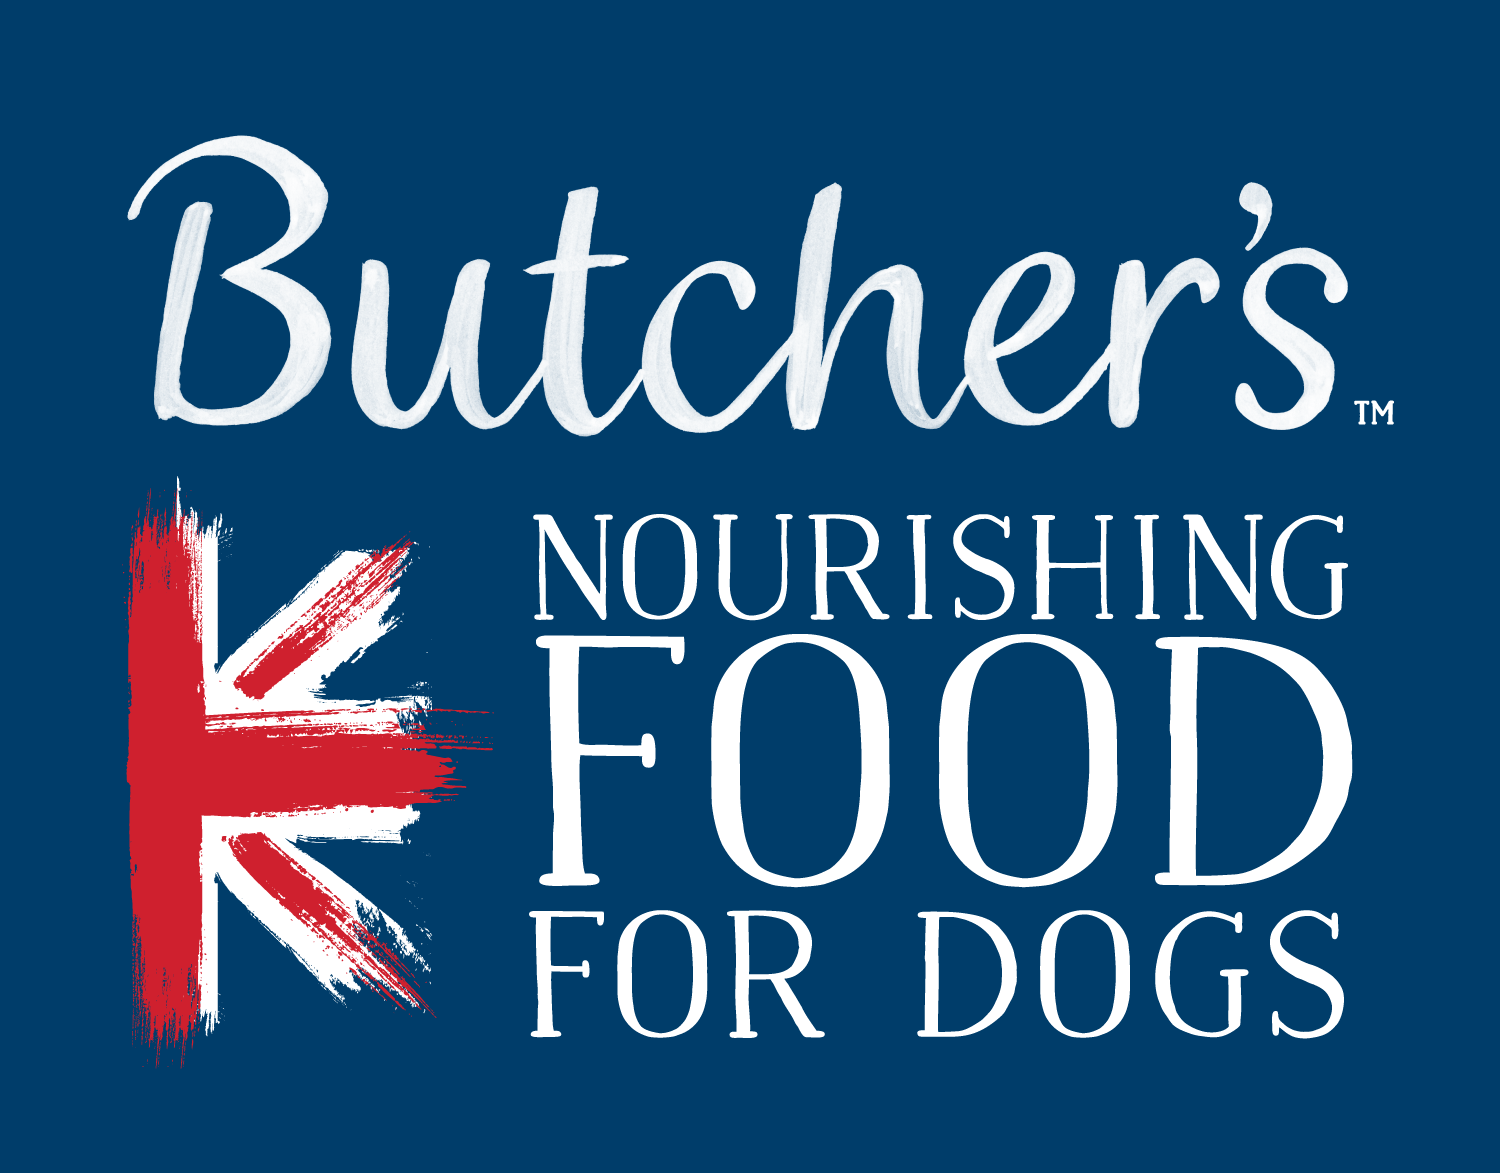 Butcher's Nourishing Food for Dogs